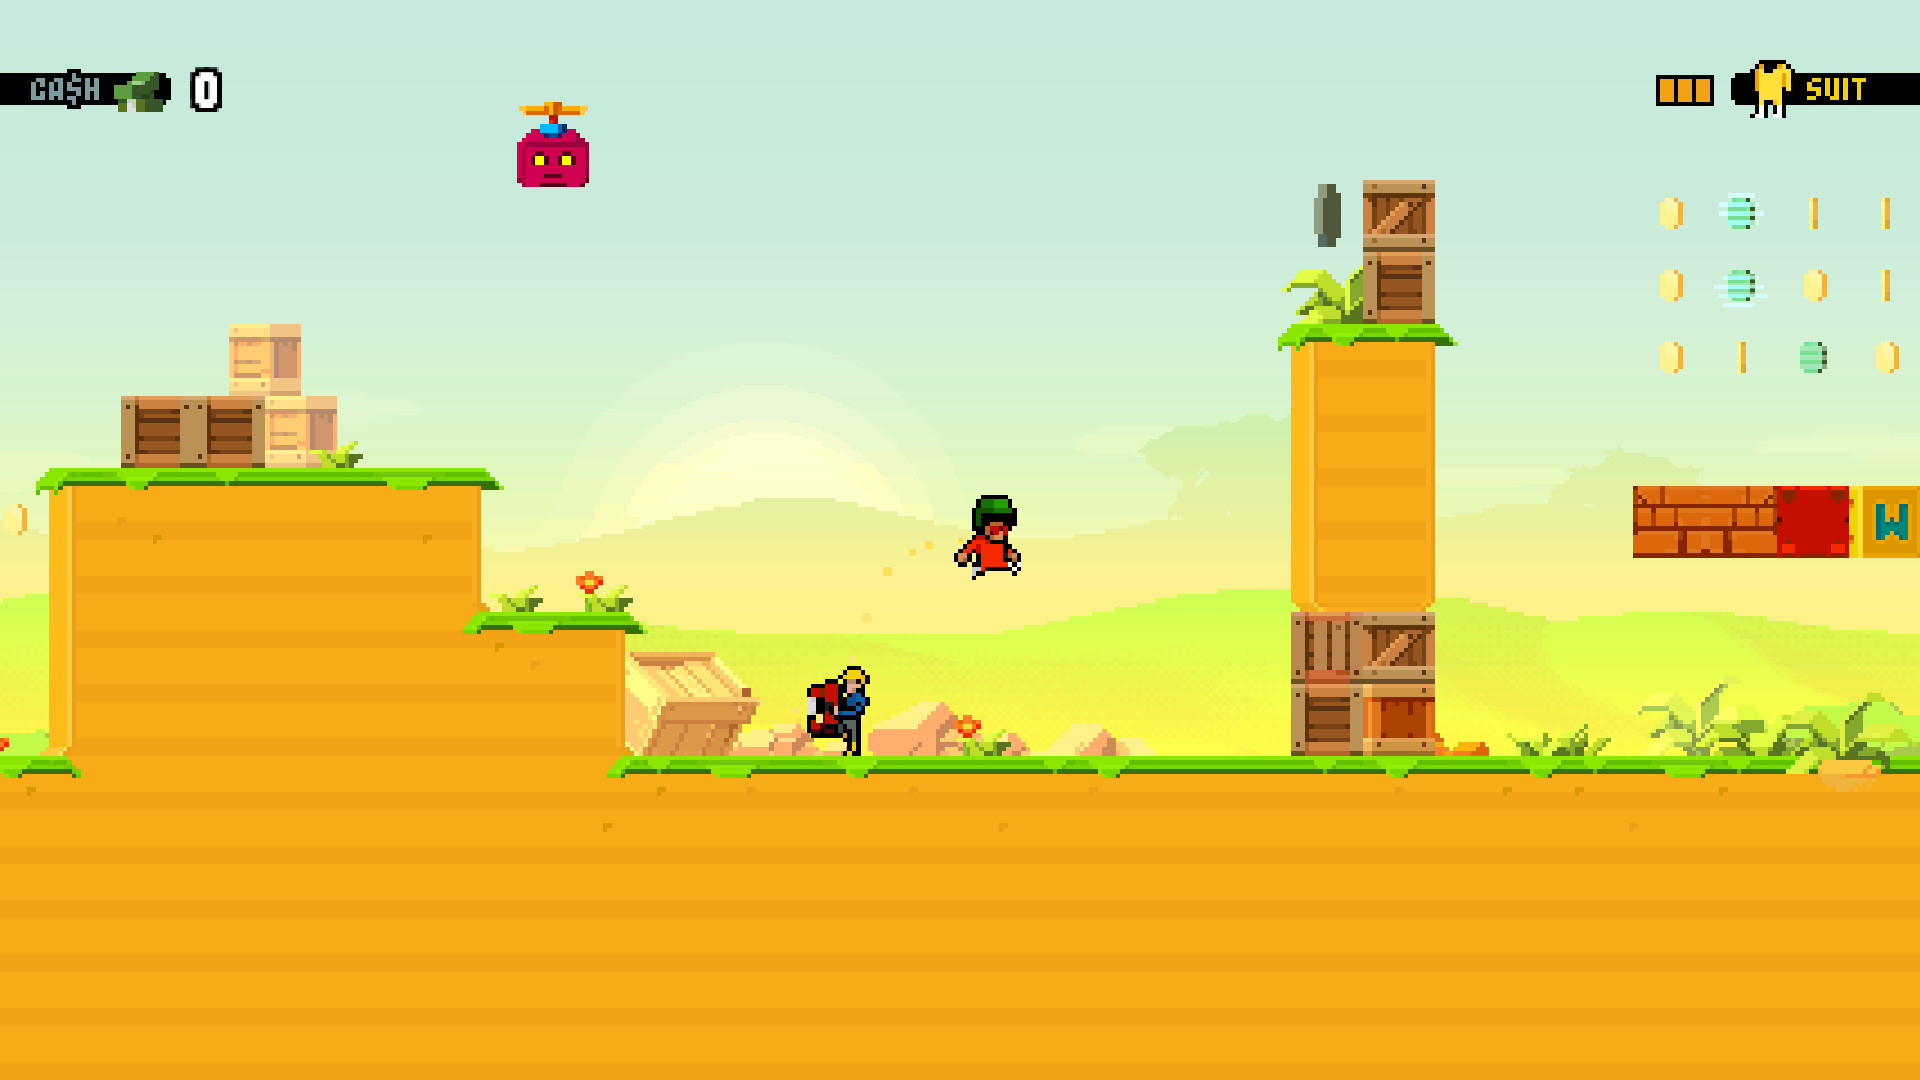 Shootout on Cash Island Screenshot 2